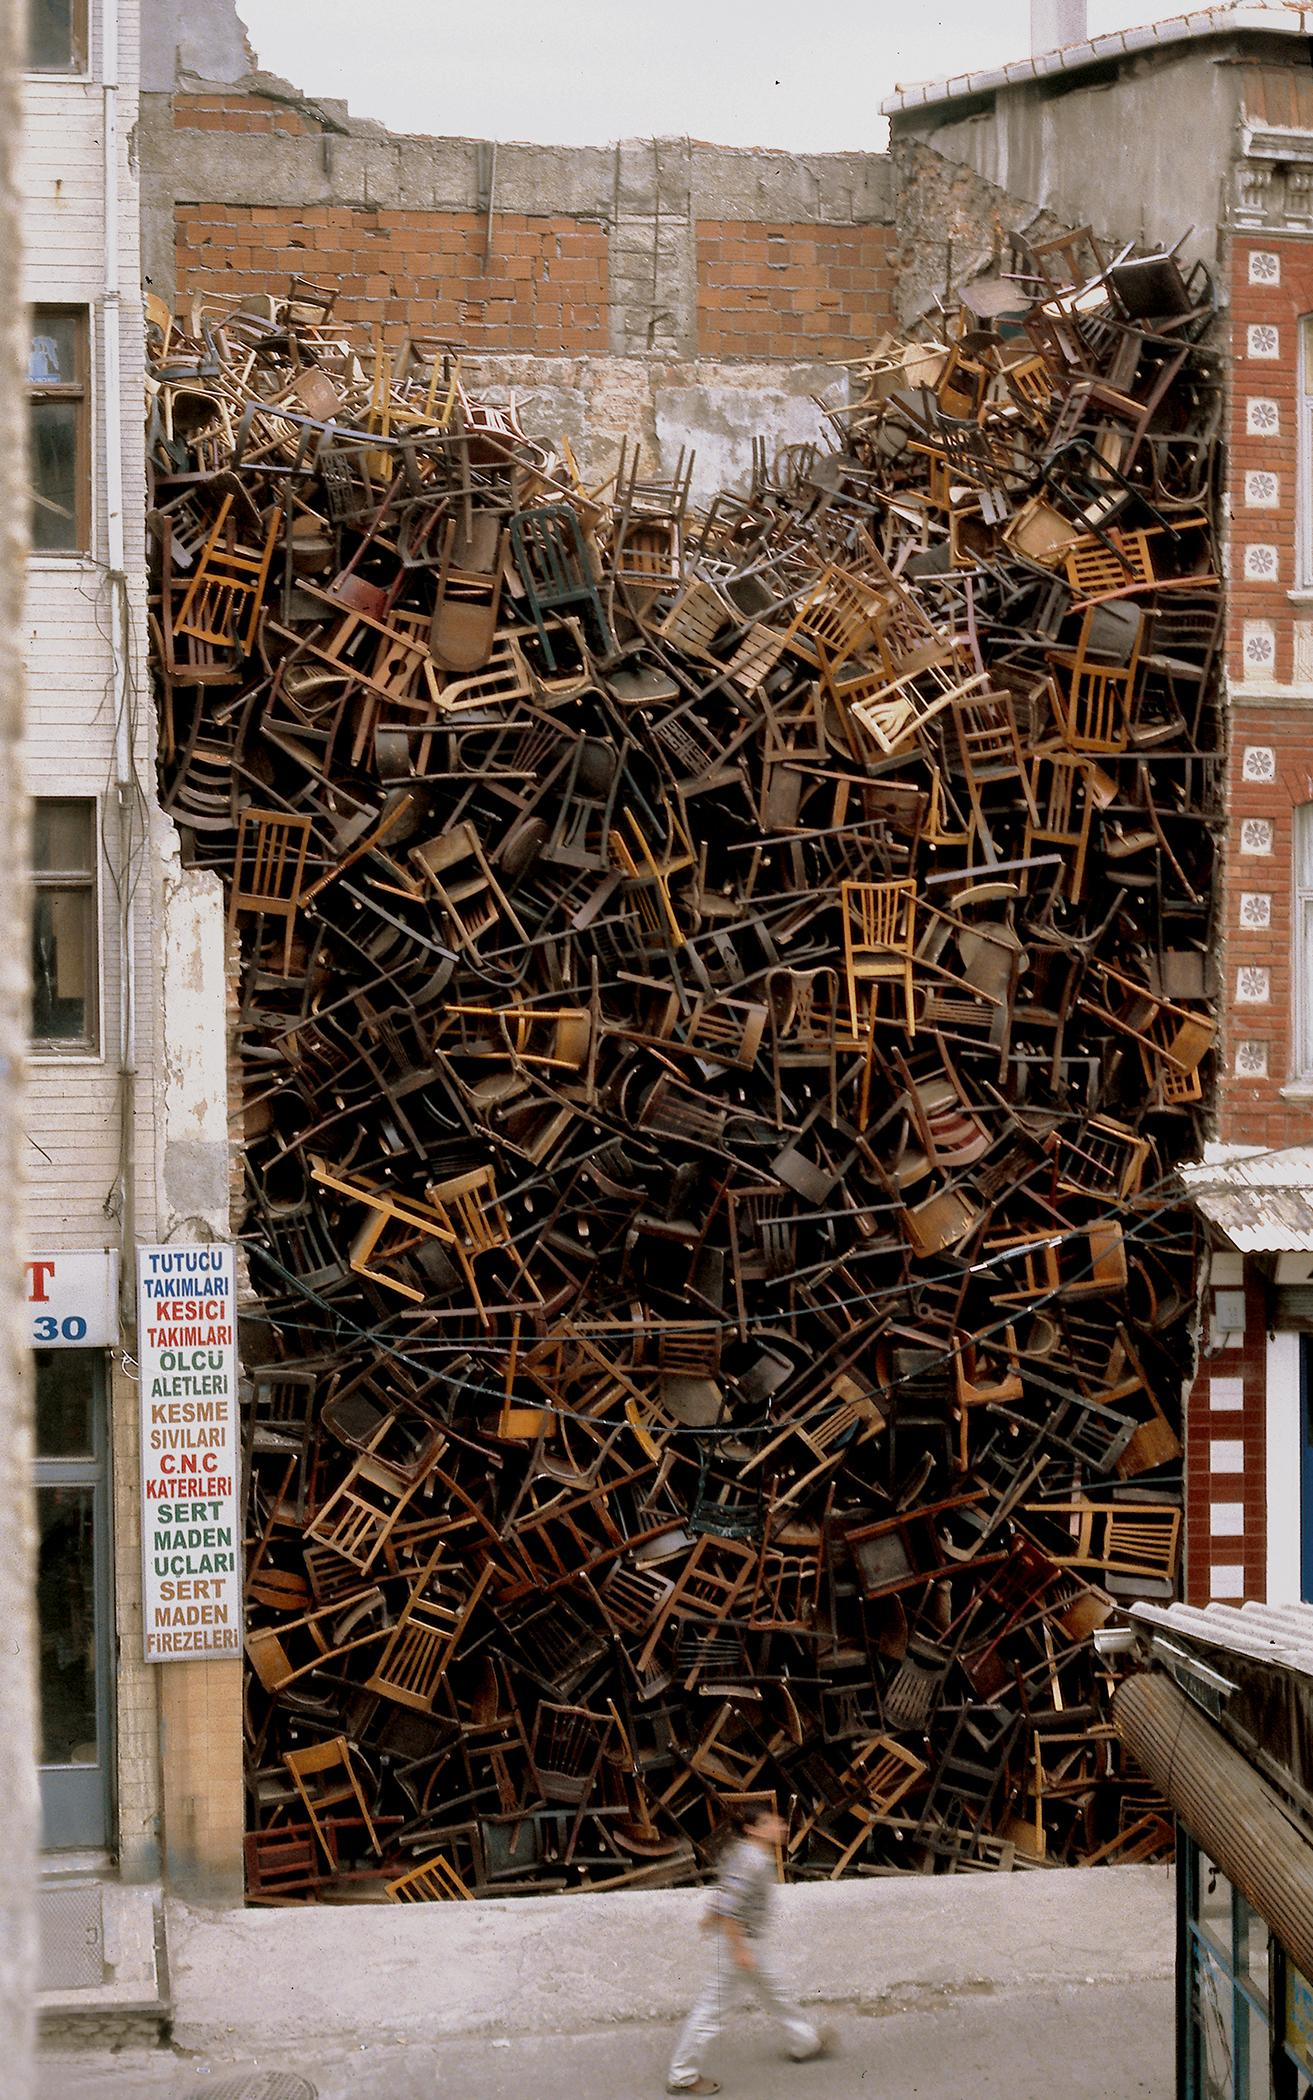 A person walks by a massive pile of hundreds of wooden chairs placed between two buildings.